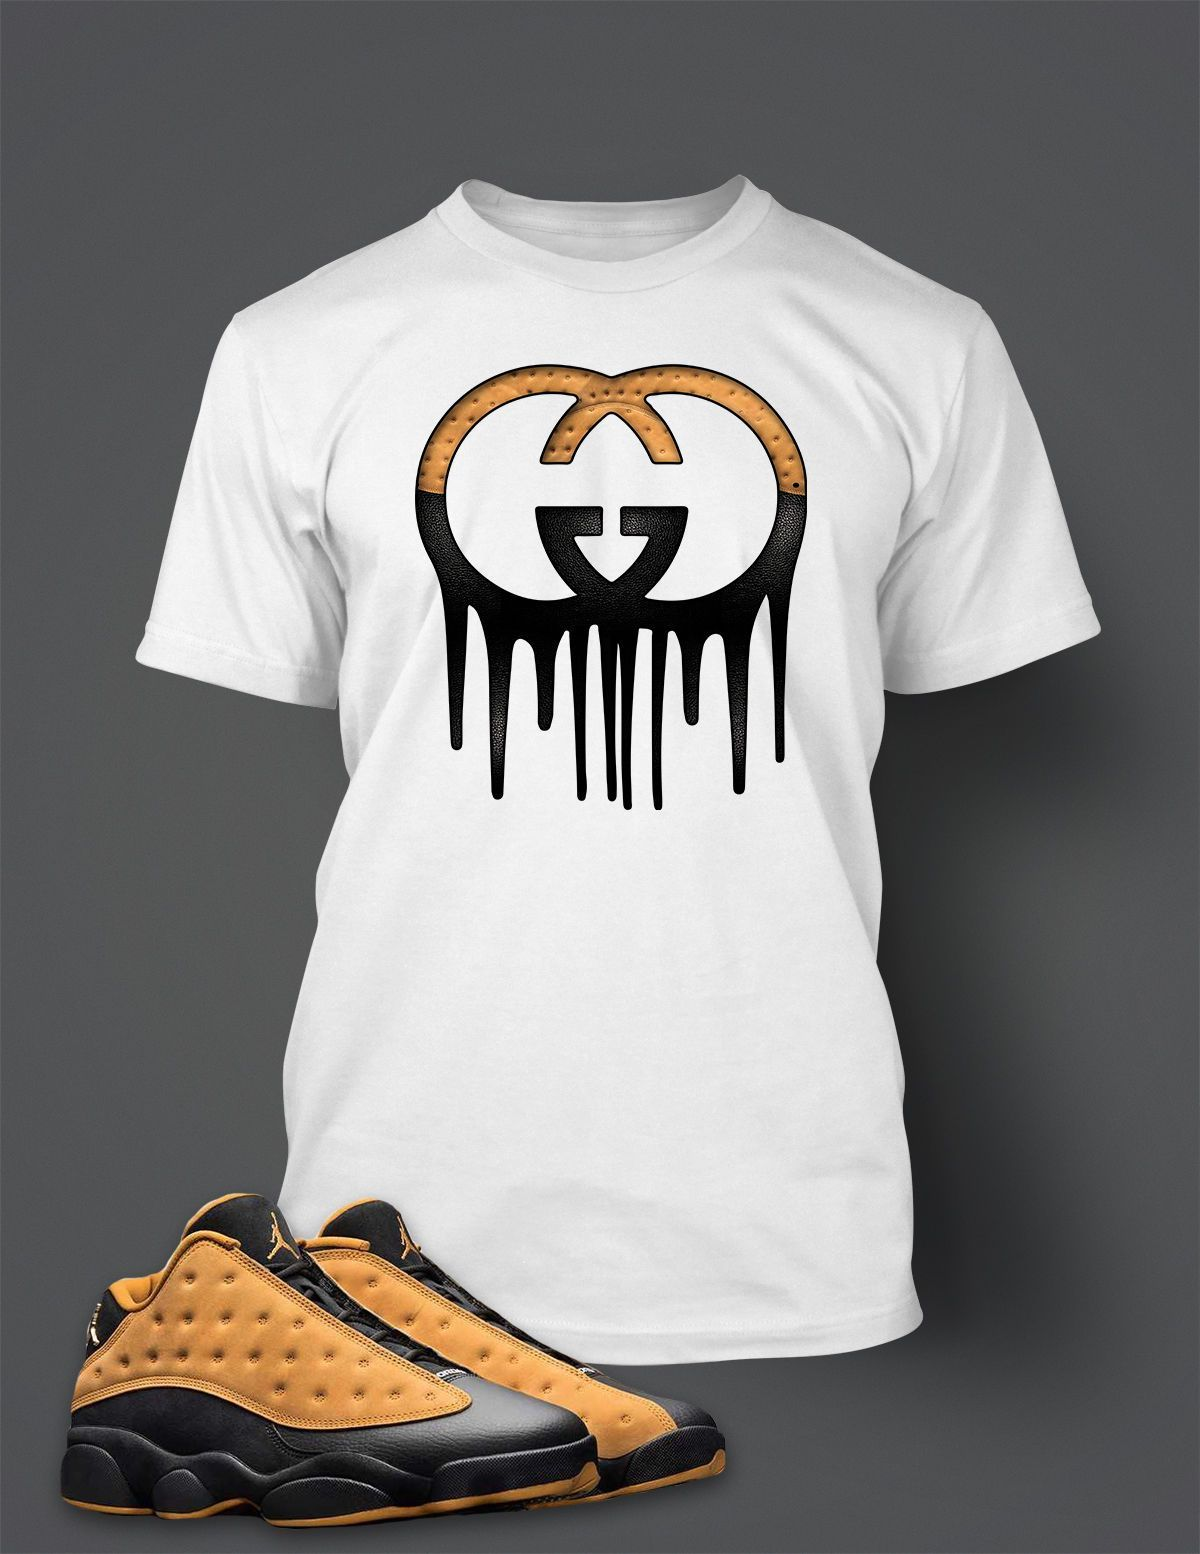 b3760e7dcdea68 New Graphic T Shirt to Match Retro Air Jordan 13 Low Chutney Shoe